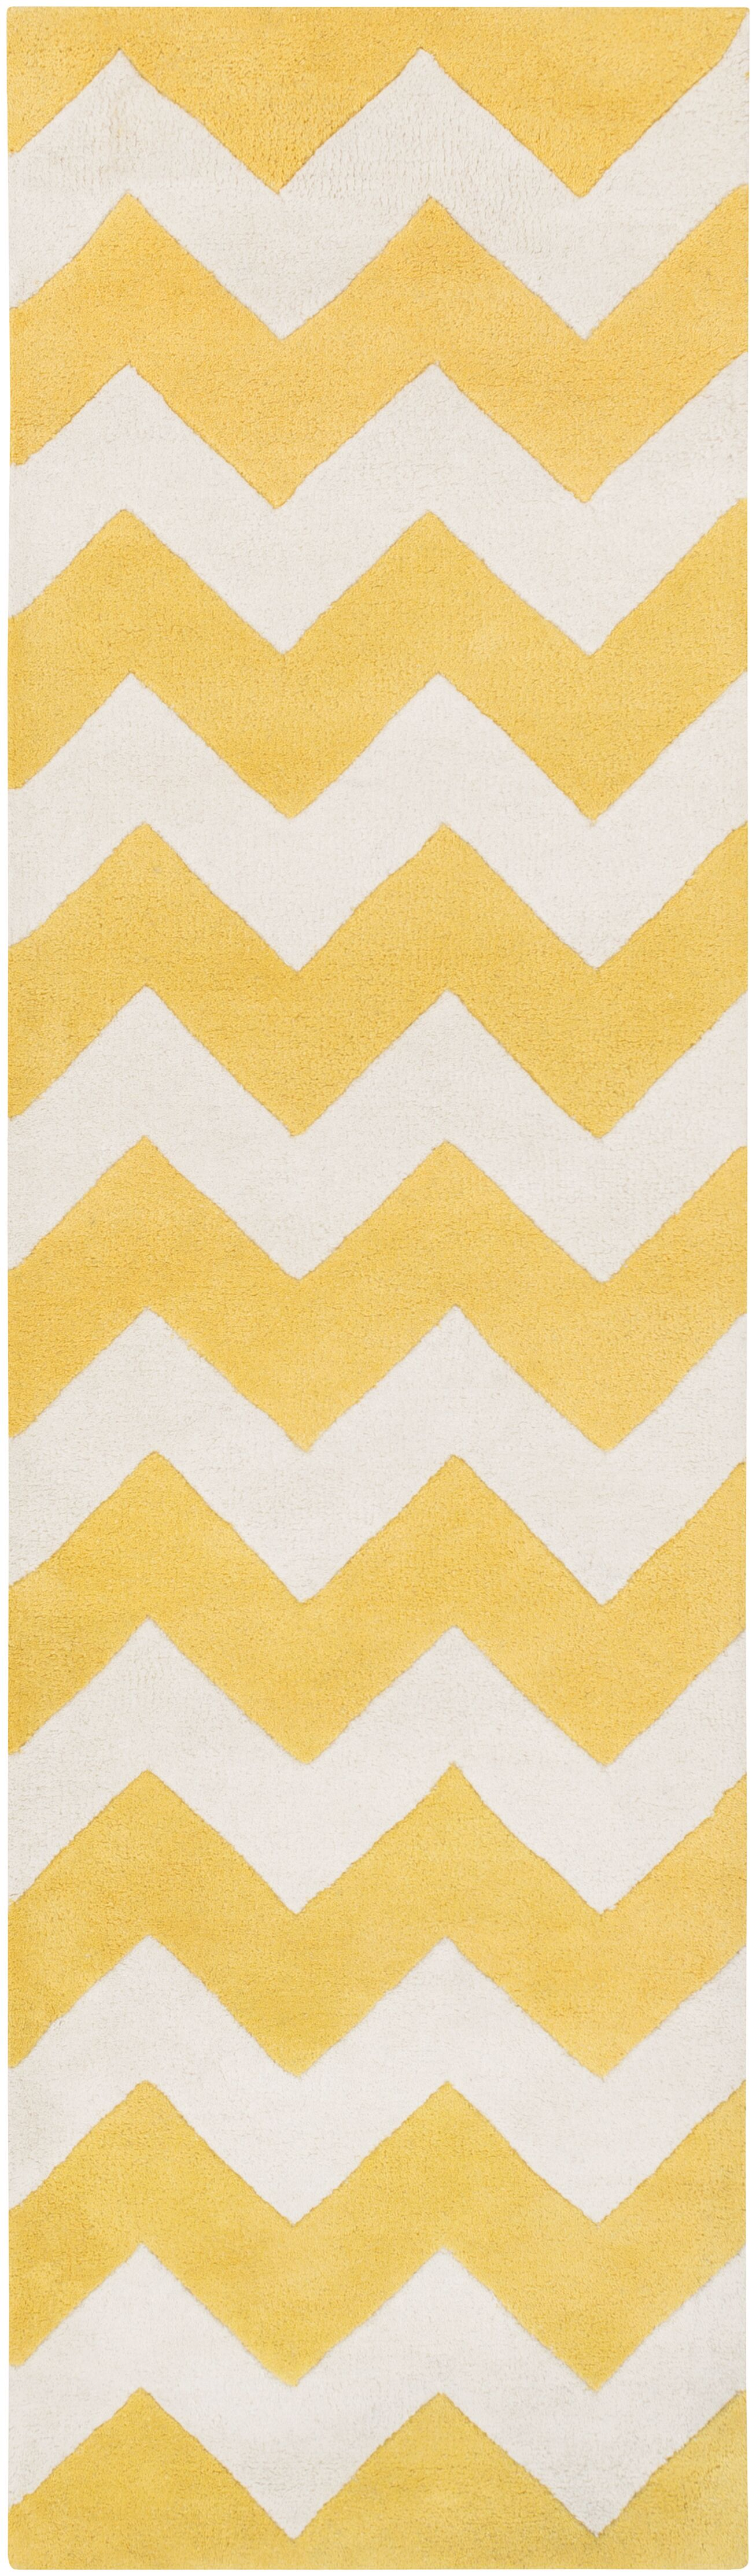 Ayler Yellow/Ivory Chevron Area Rug Rug Size: Runner 2'3